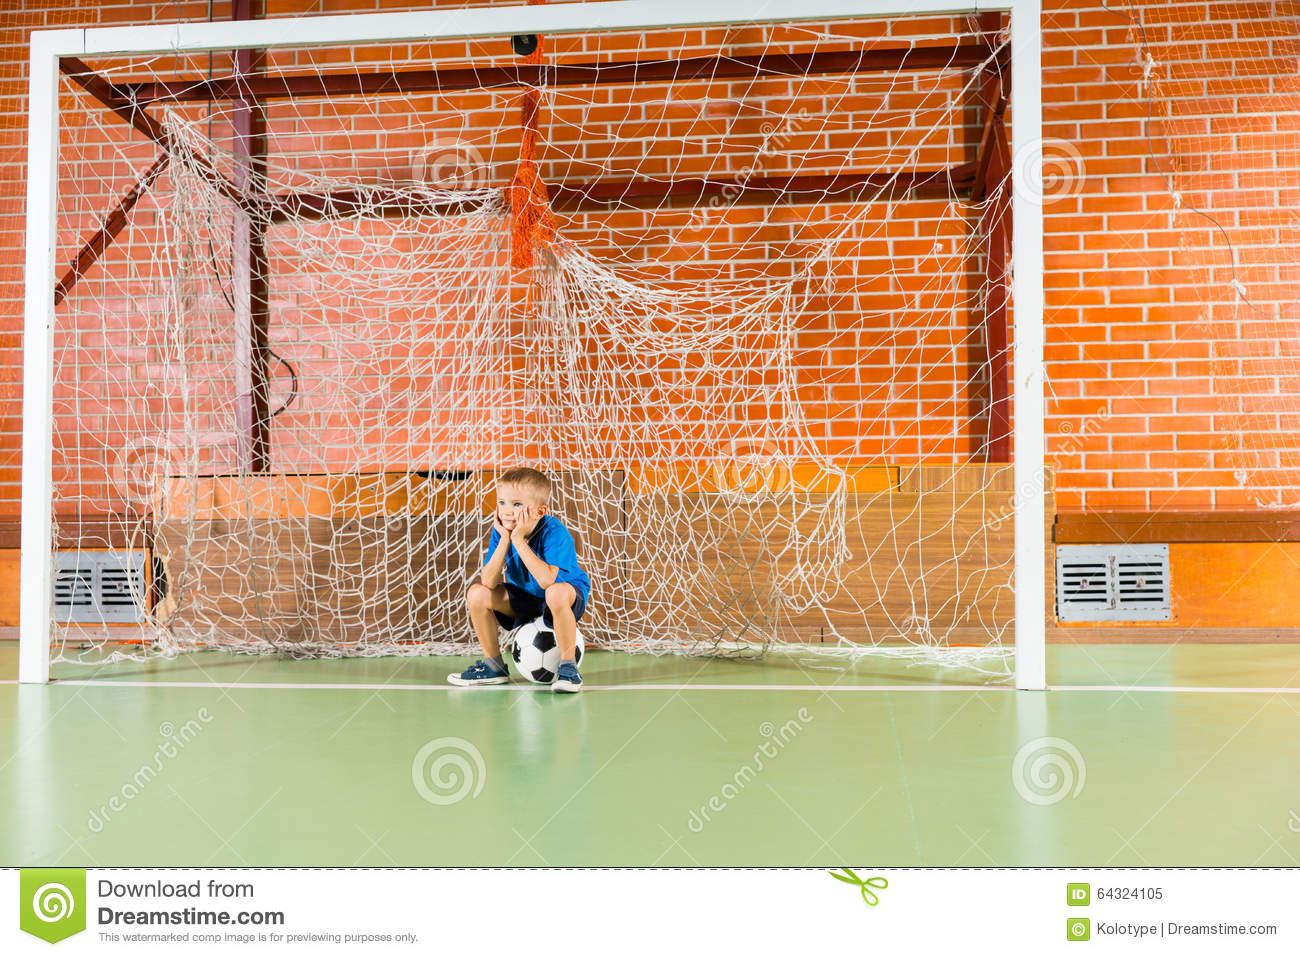 Bored Young Boy Waiting On An Indoor Soccer Court Stock Photo ...